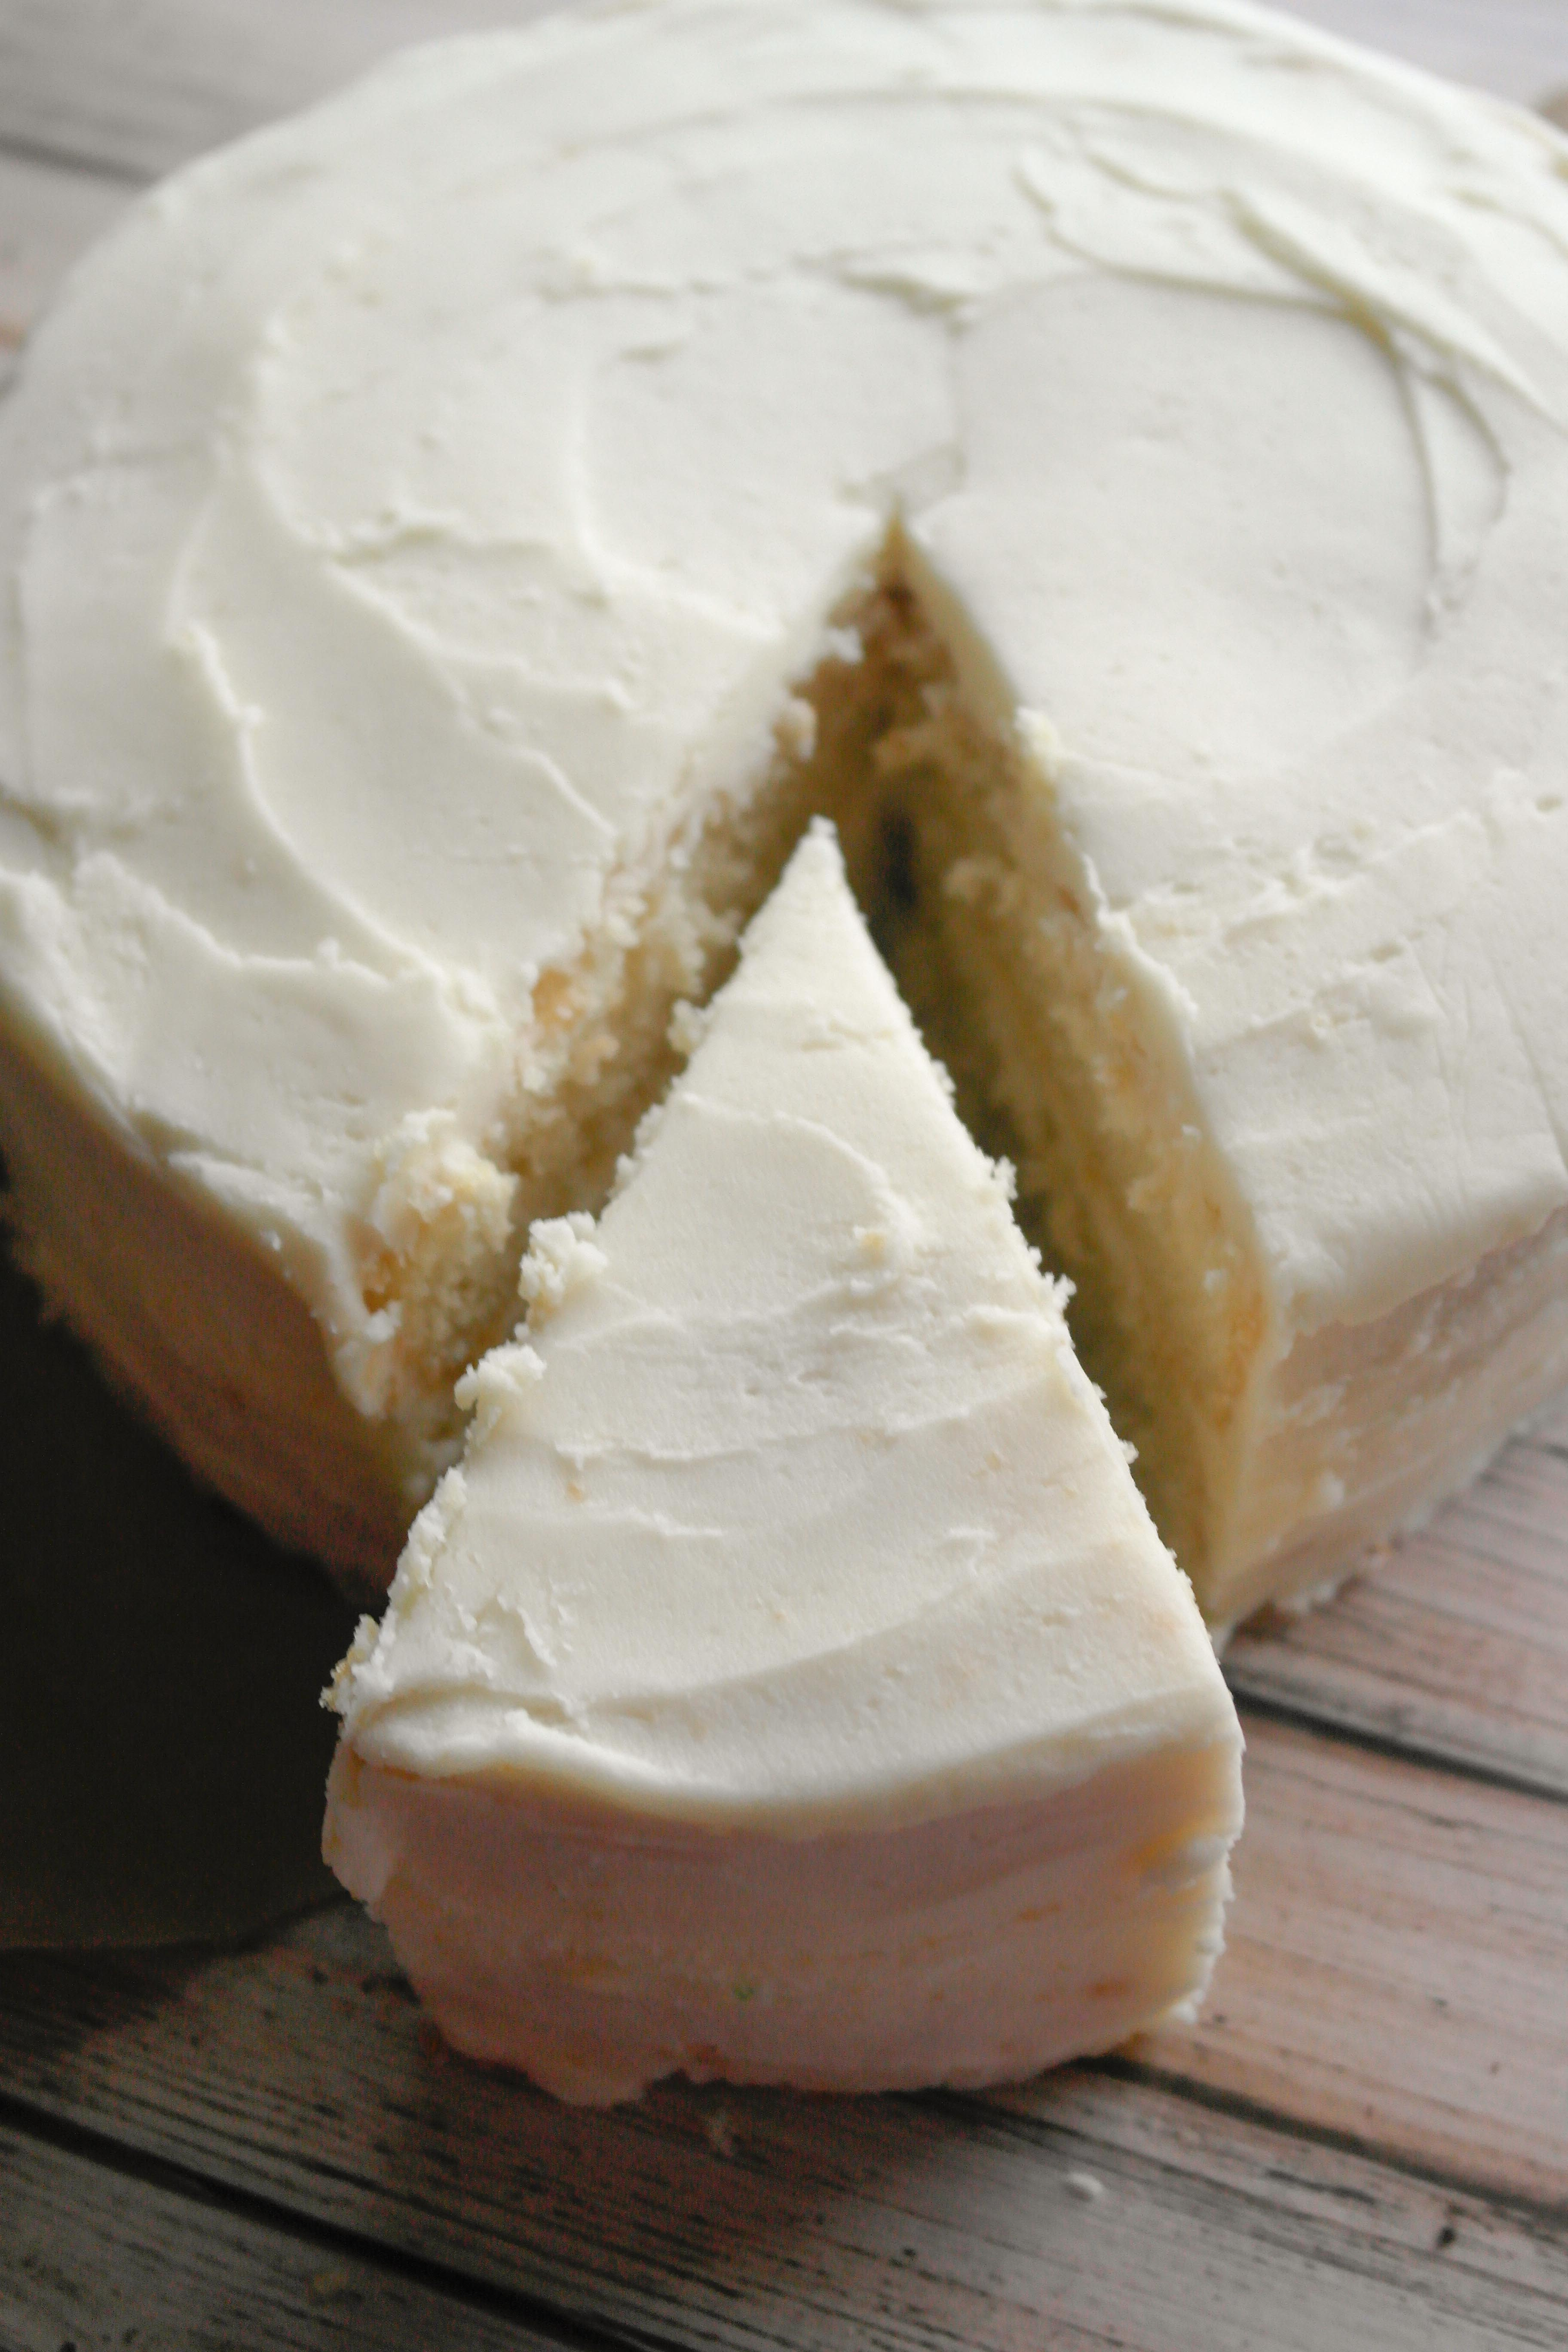 Cake Made With Yogurt Instead Of Butter